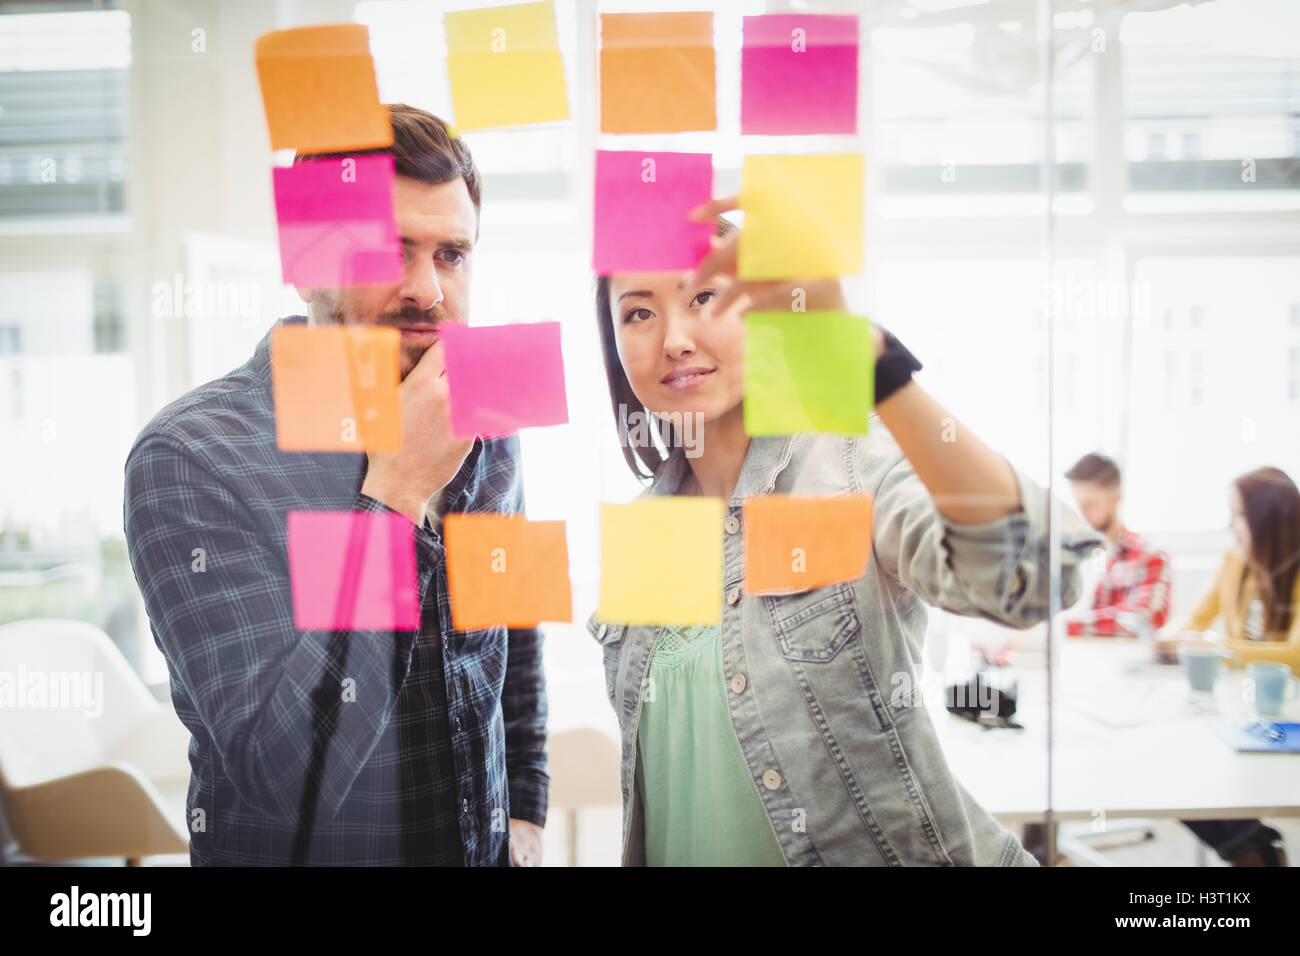 Creative business people looking at multi colored sticky notes on glass - Stock Image